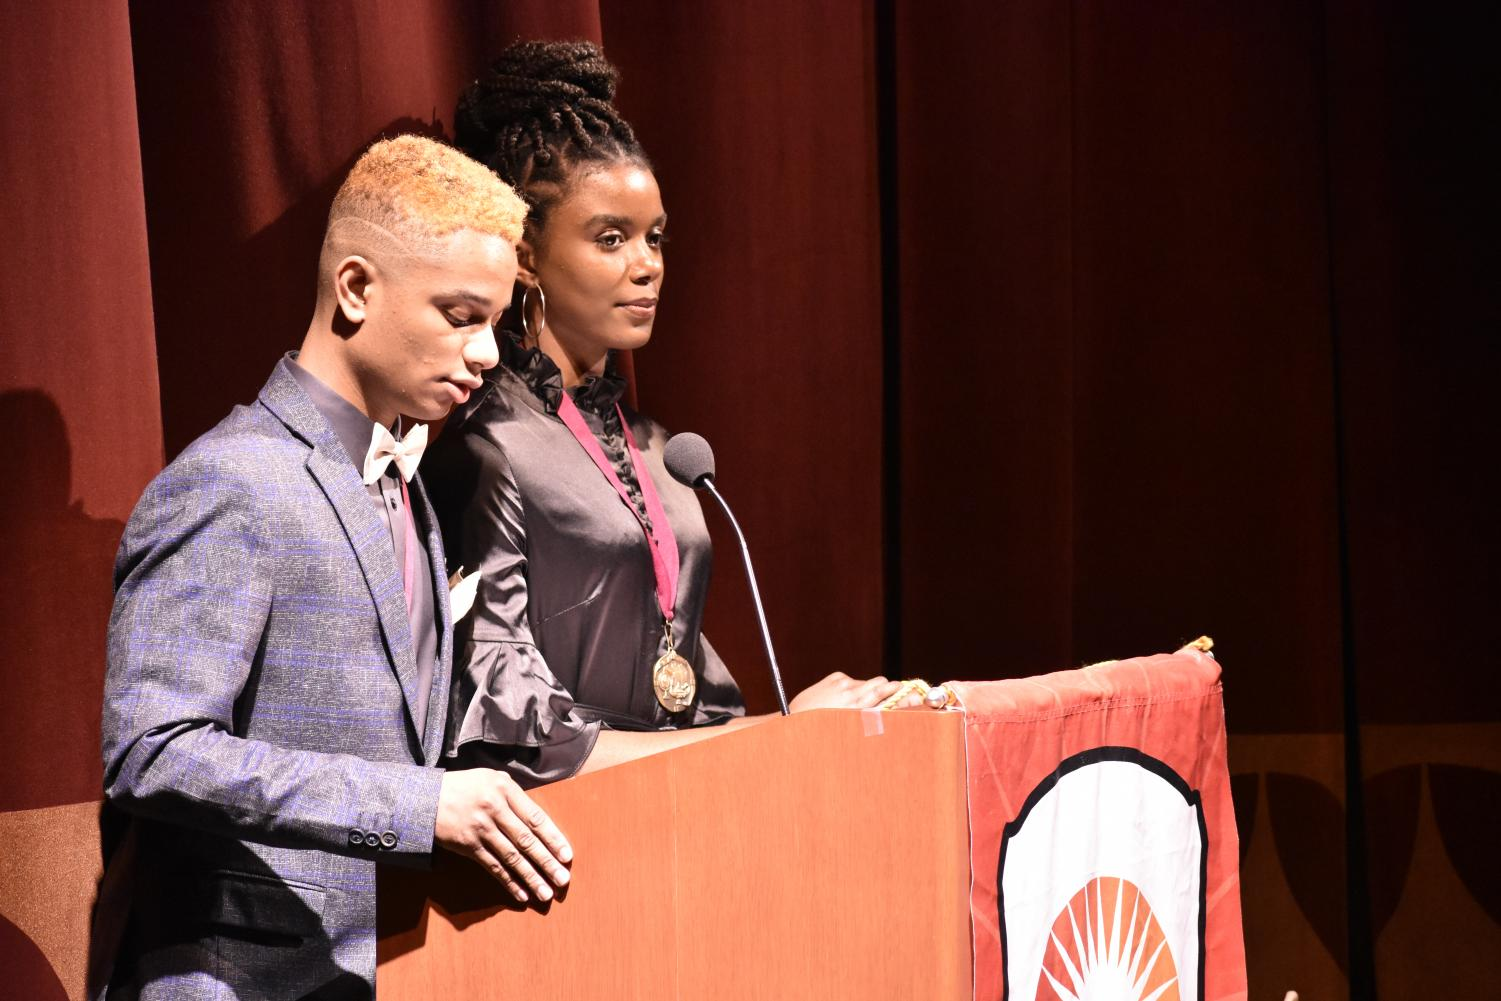 Mistress+and+Master+of+Ceremonies%2C+junior+Jonica+Dandridge+and+senior+Elijah+Edwards+from+South+High+speak+on+the+history+of+Spirit+of+Excellence.+They+spoke+on+how+the+program+is+growing+exponentially+and+announced+that+this+year%2C+612+students+grades+3-12+are+receiving+awards.%0A